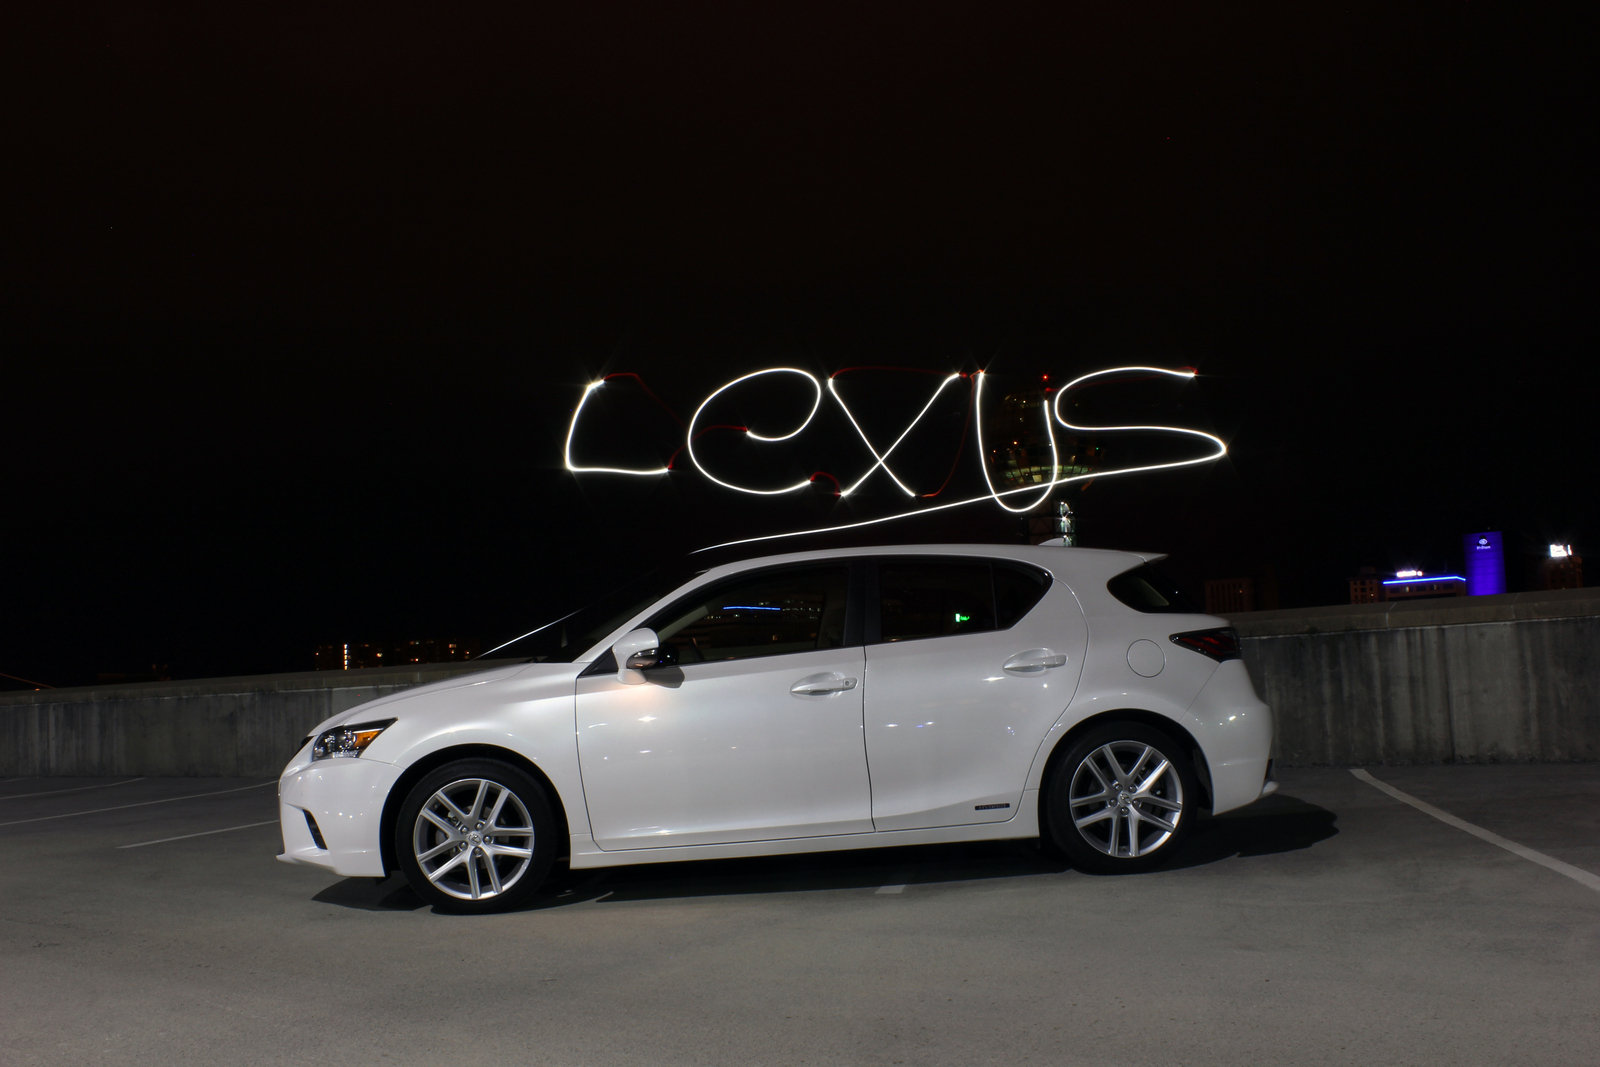 2015 lexus ct 200h driven picture 615163 car review top speed. Black Bedroom Furniture Sets. Home Design Ideas